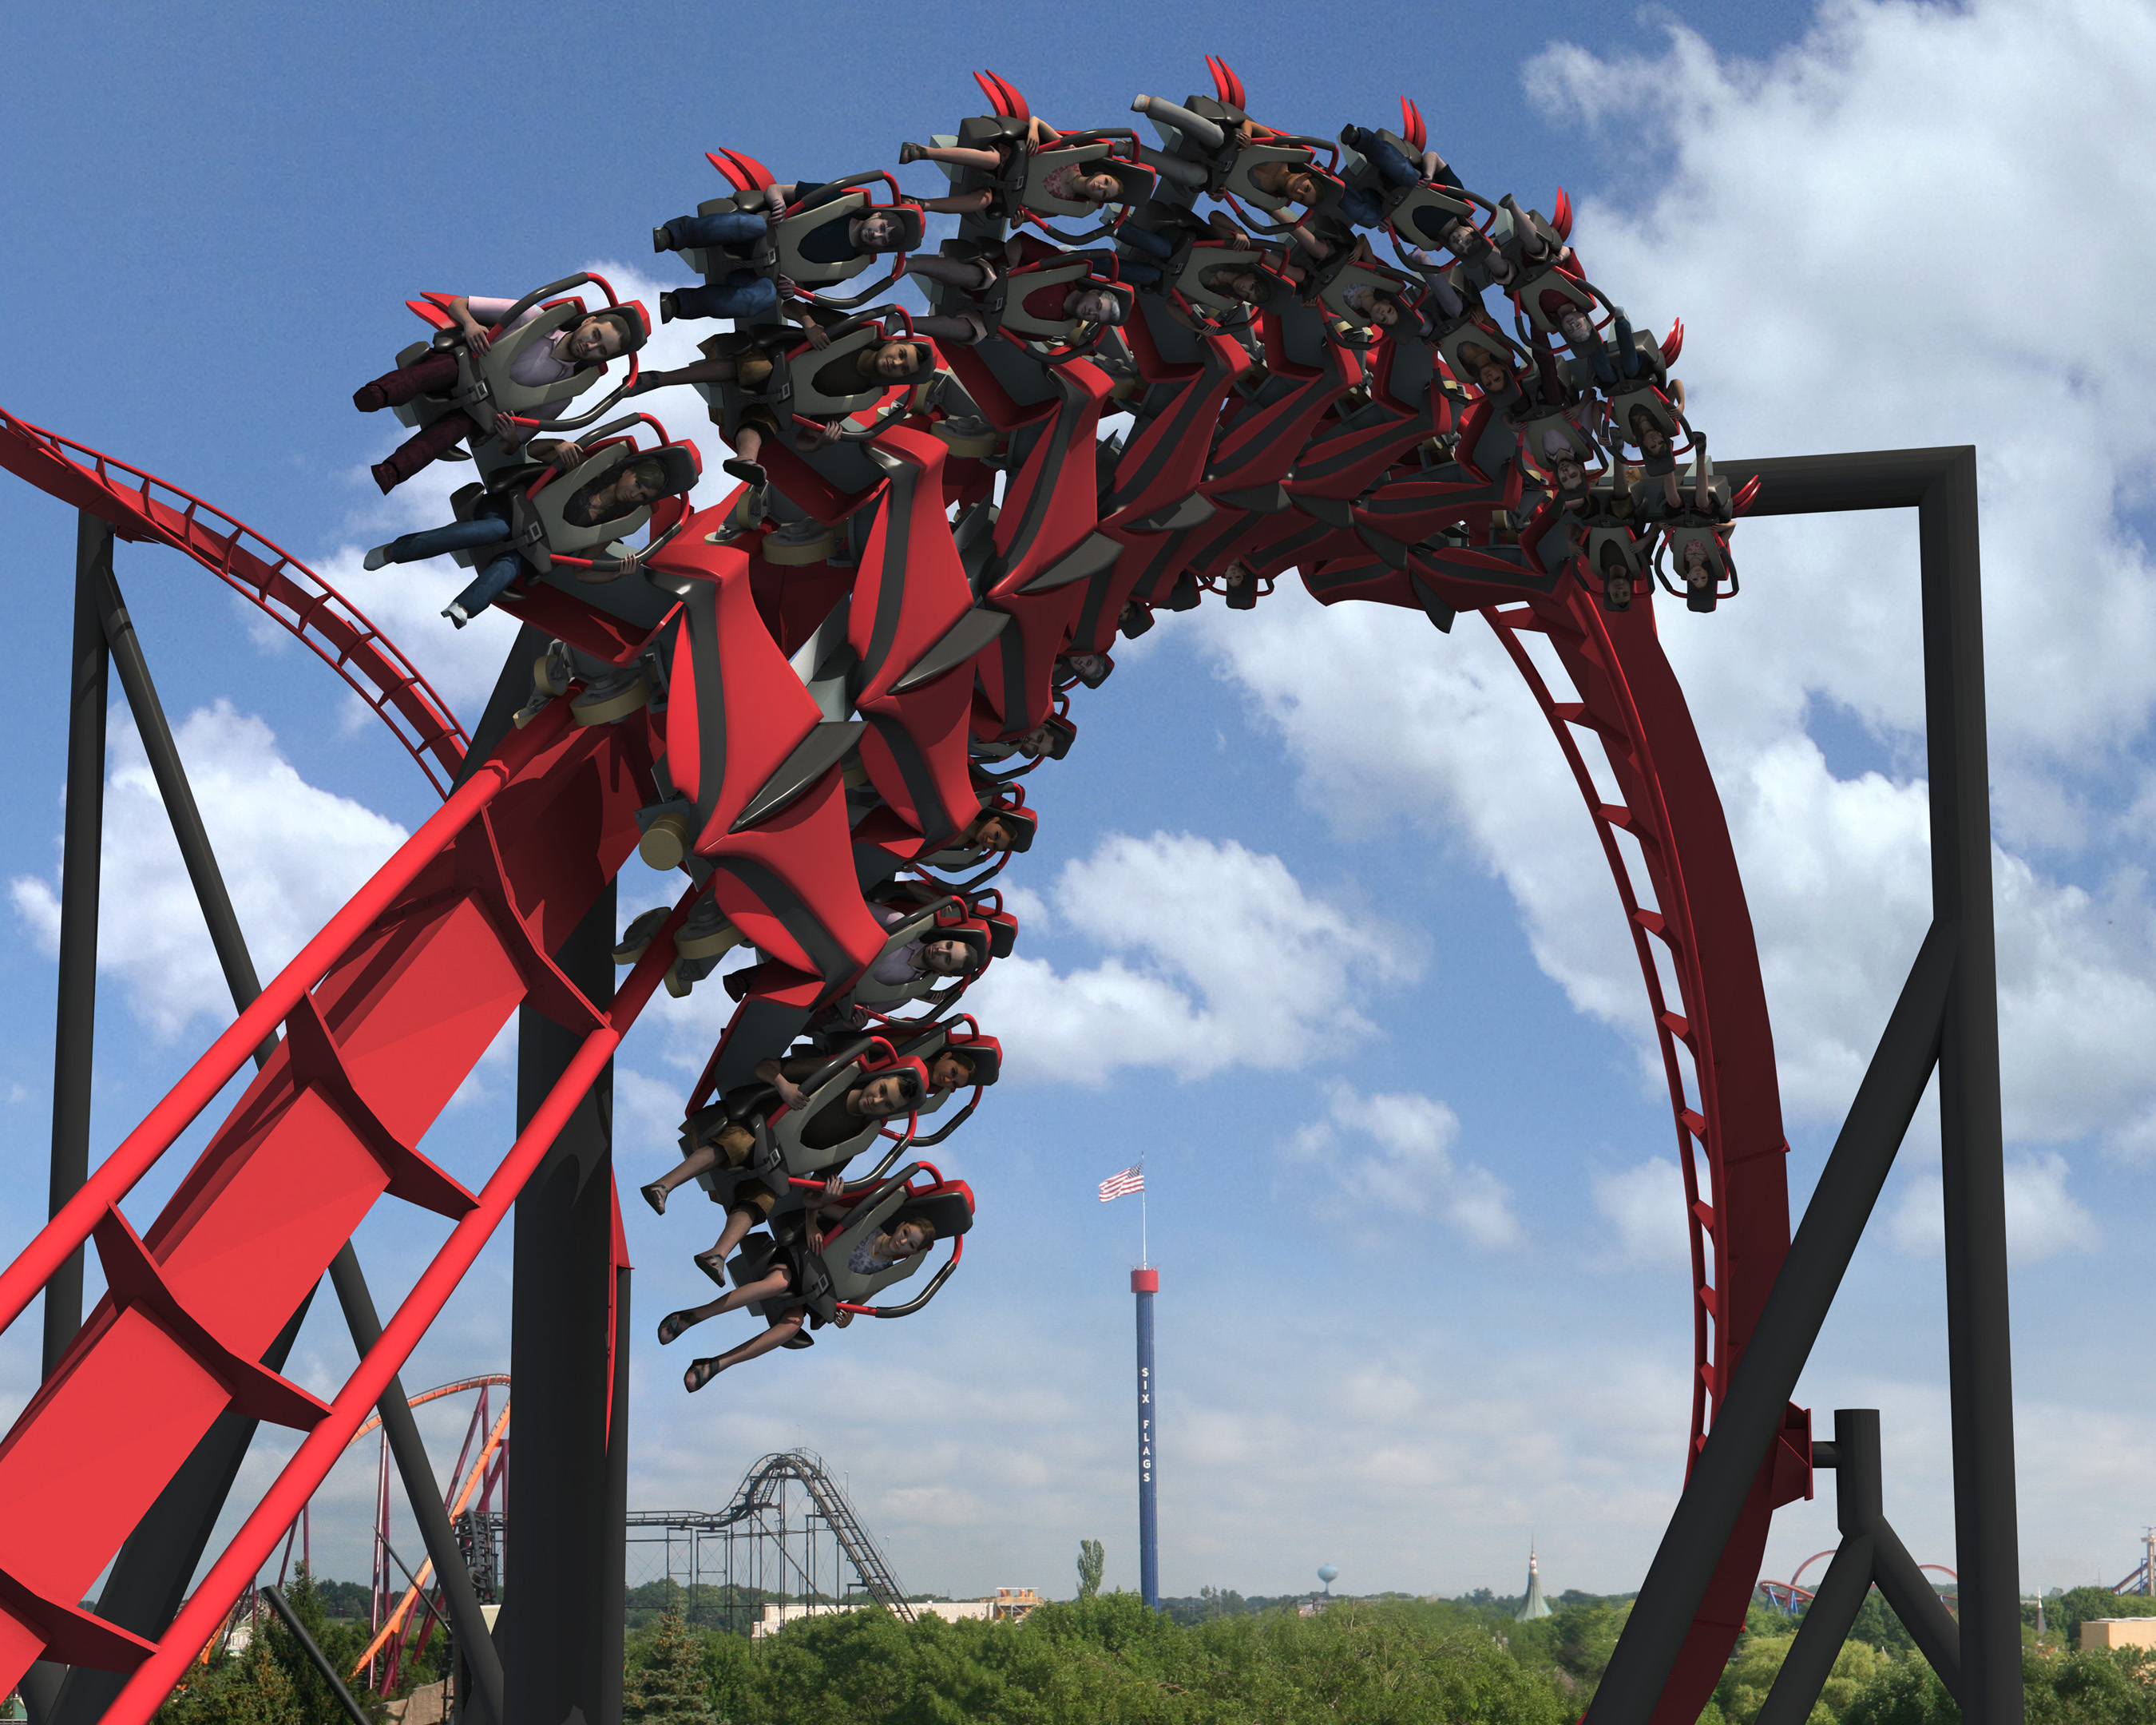 B M Wing Coaster coming to Six Flags Great America in 2012 Amusement Today